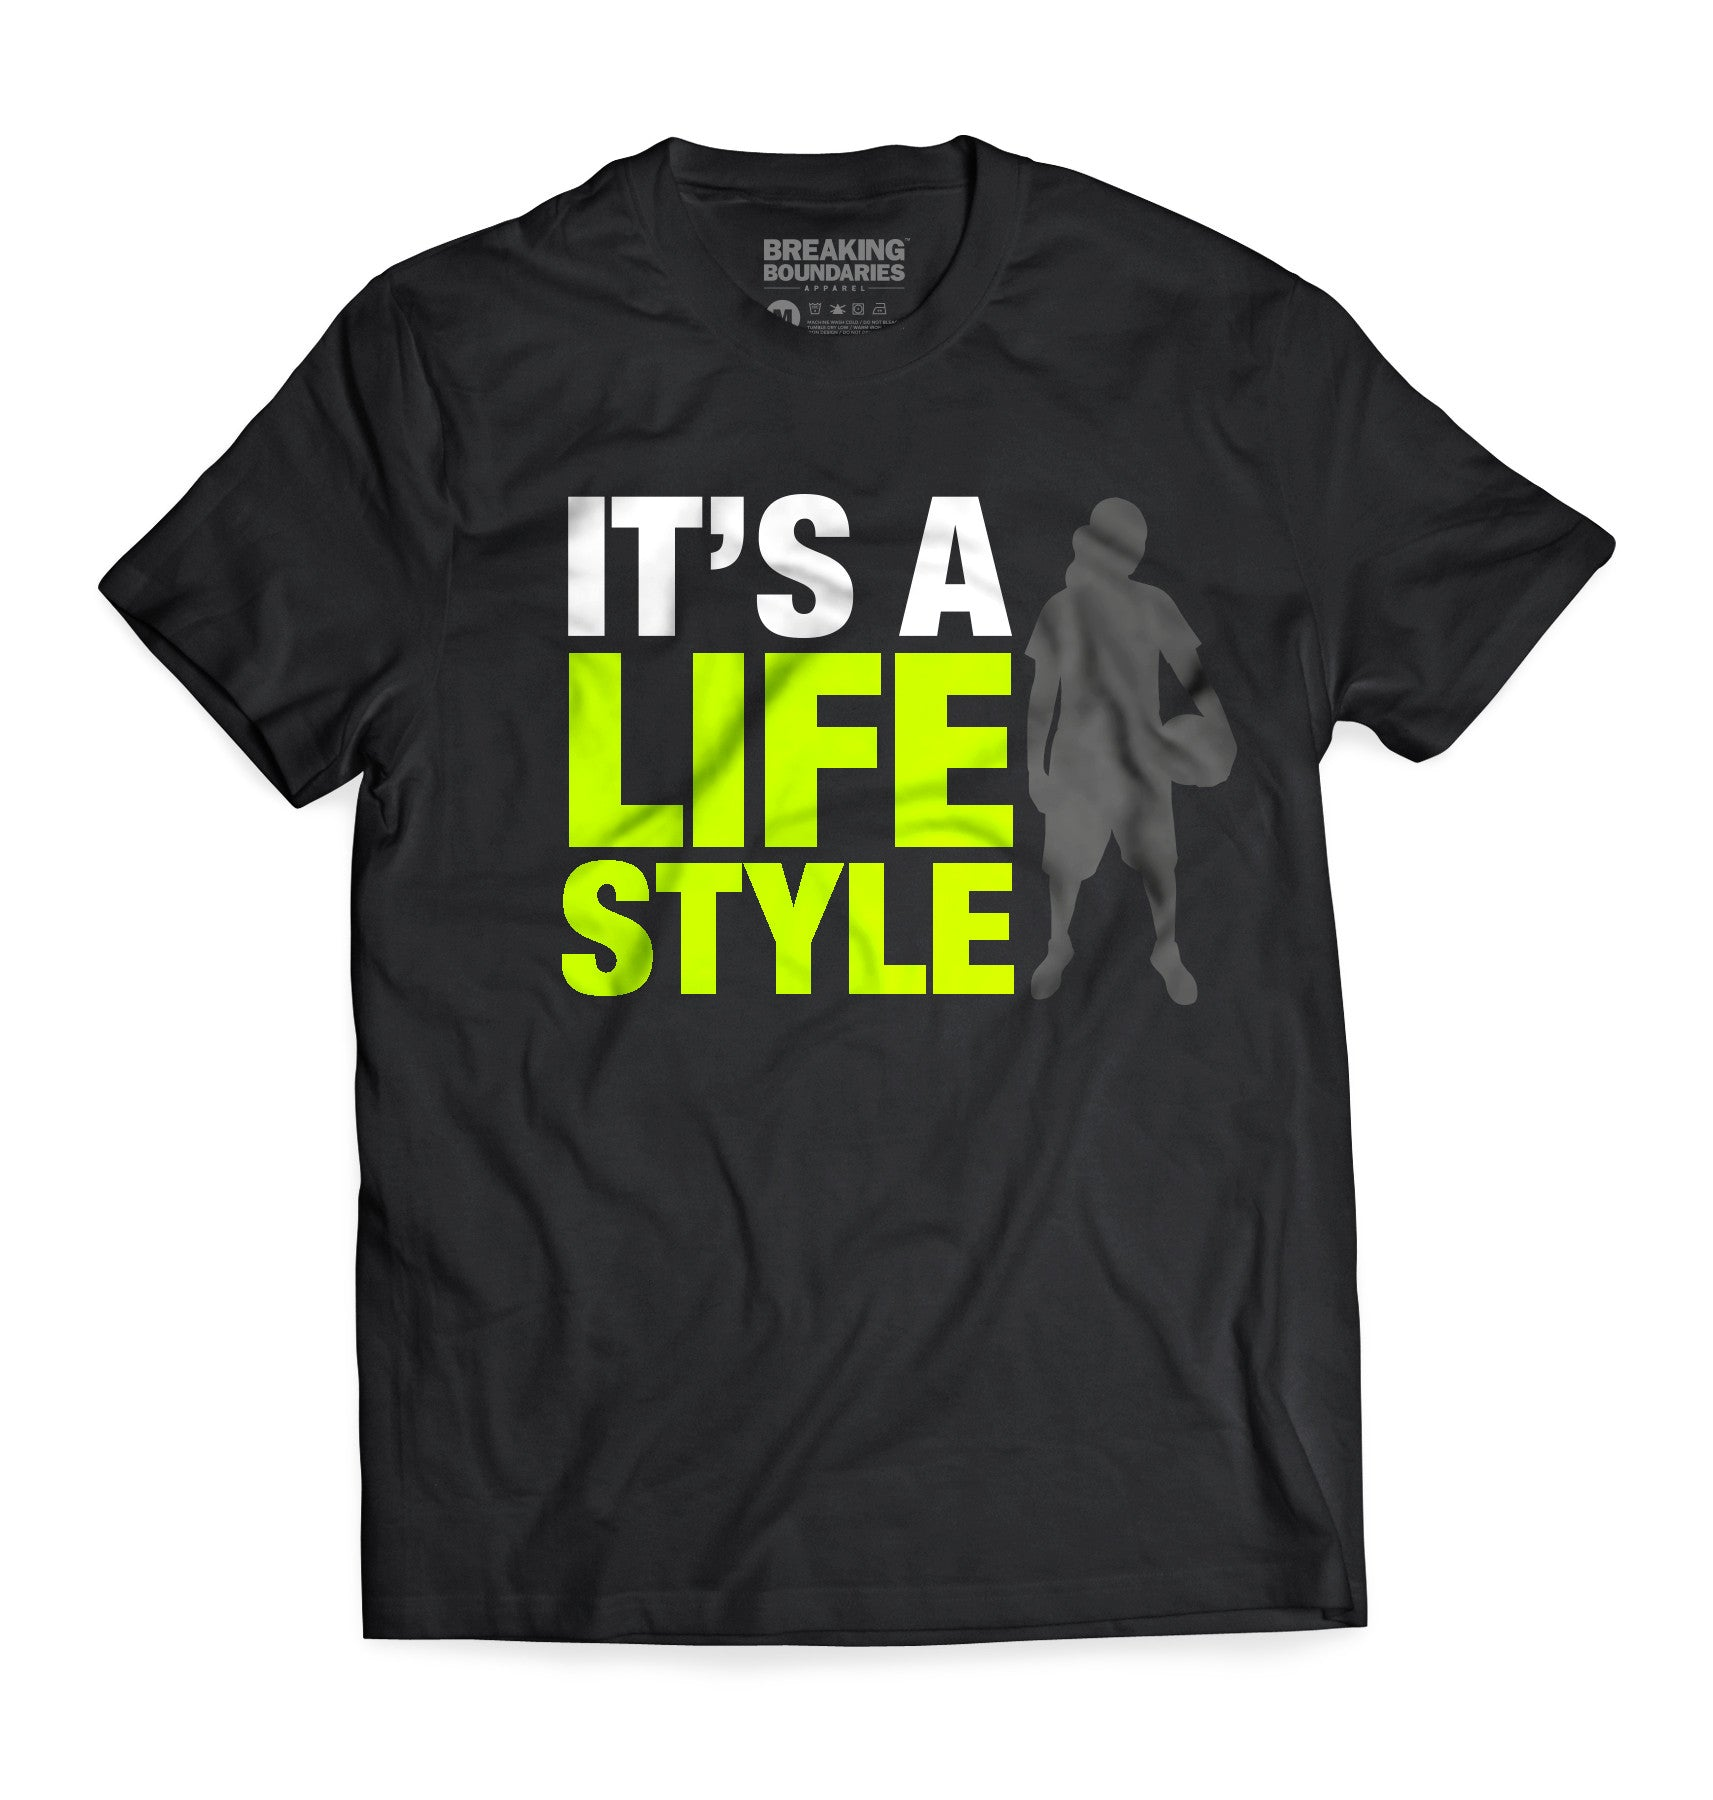 It's a Lifestyle Tee - Women's Basketball